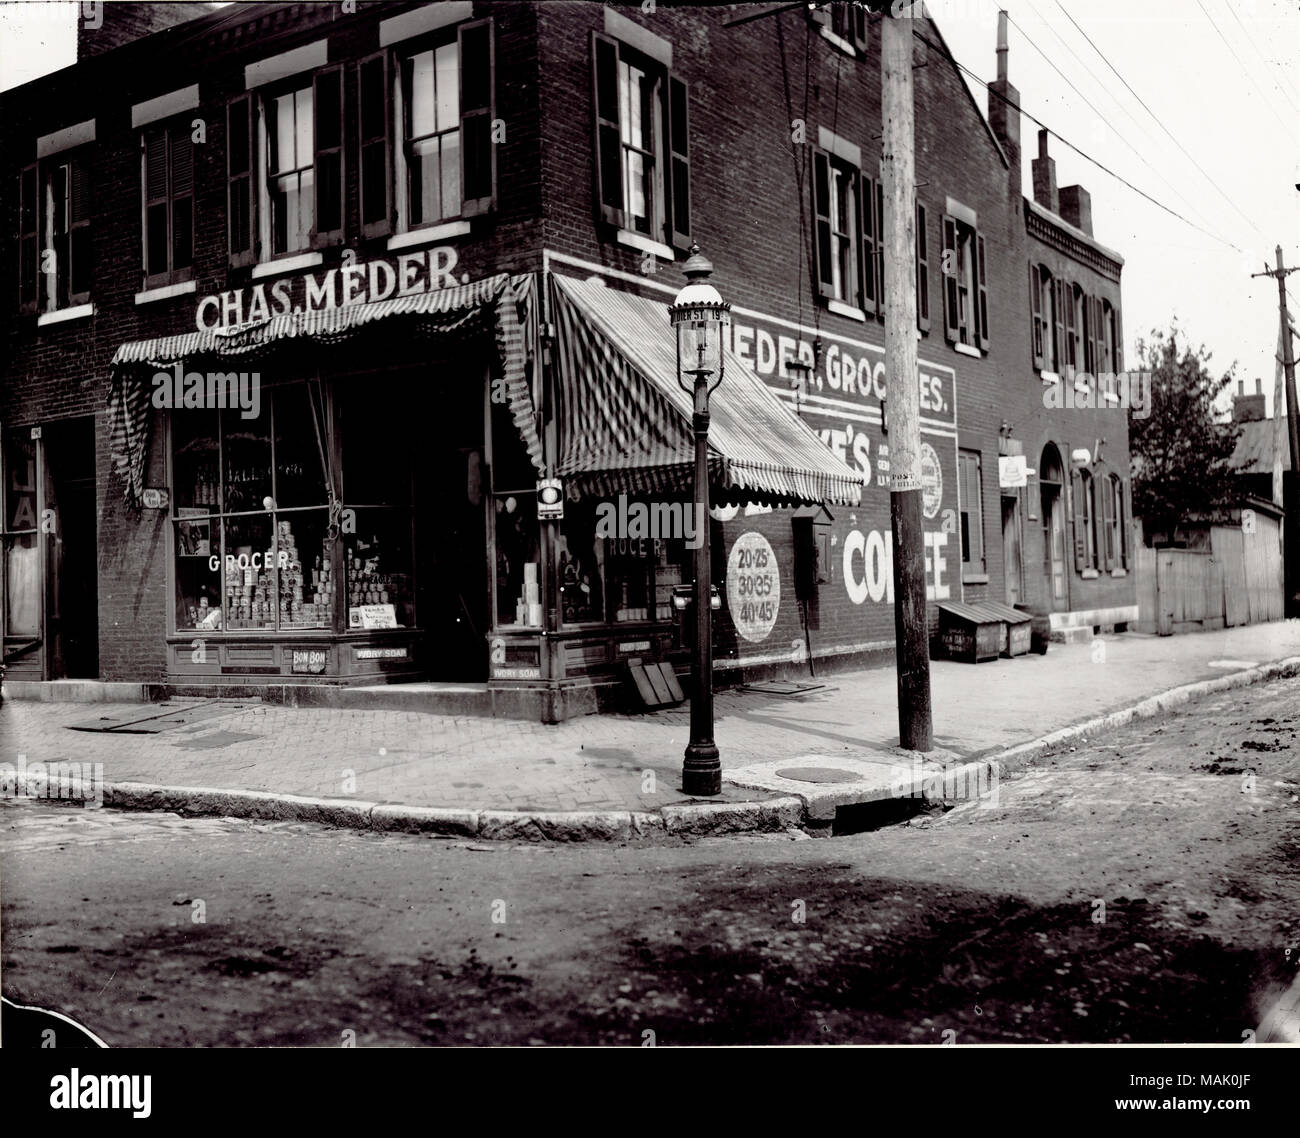 Title: Charles Meder Grocery store at the corner of Nineteenth and Dodier Streets.  . circa 1900. - Stock Image